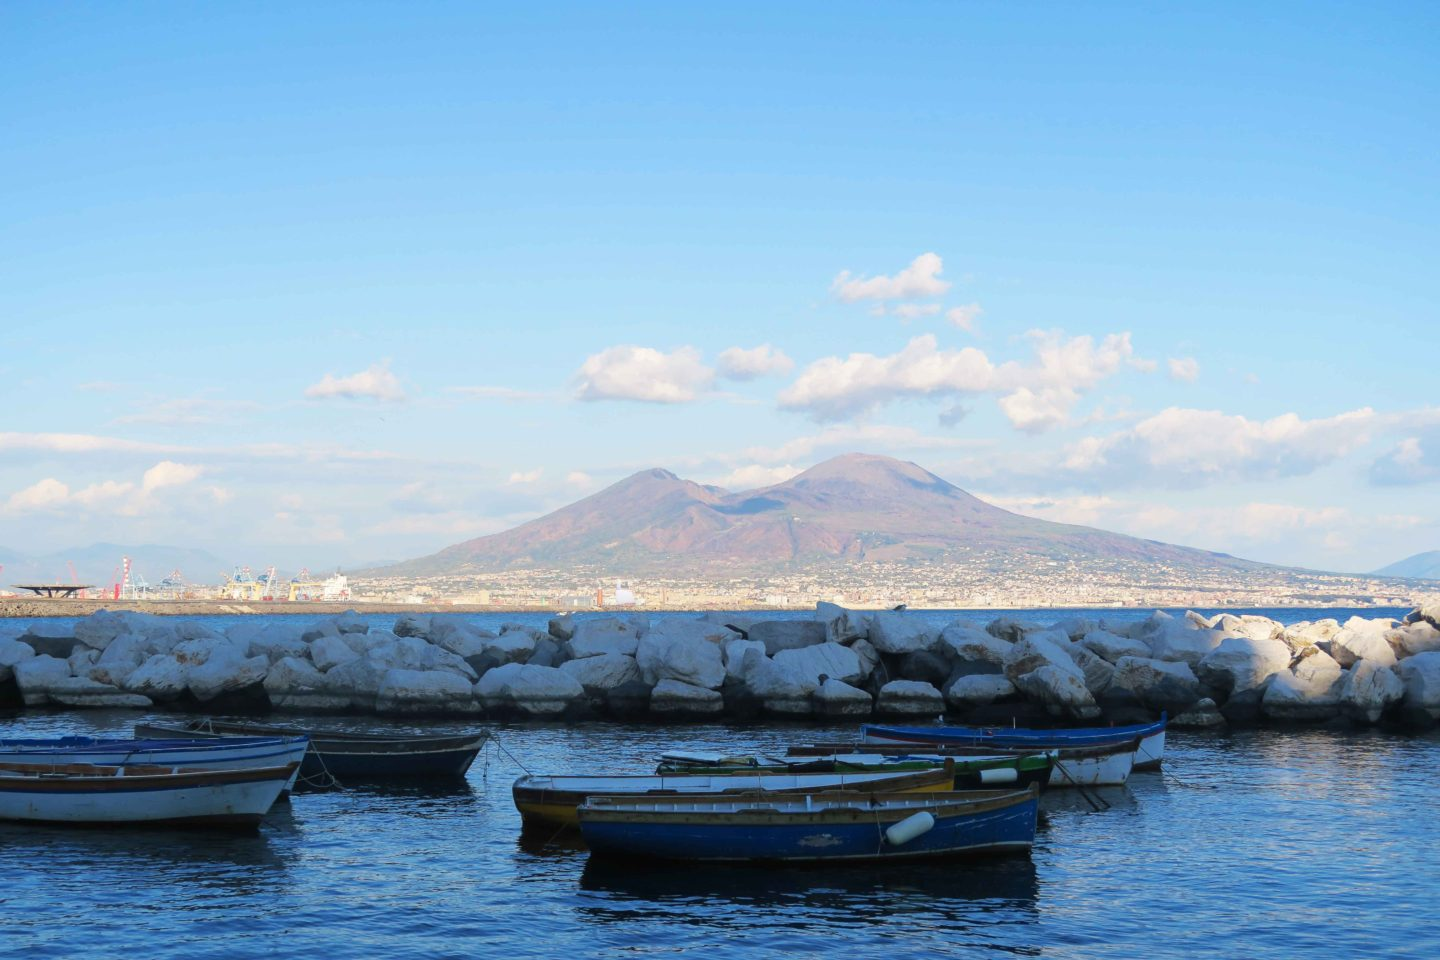 boats in the water at naples in front of mount vesuvius